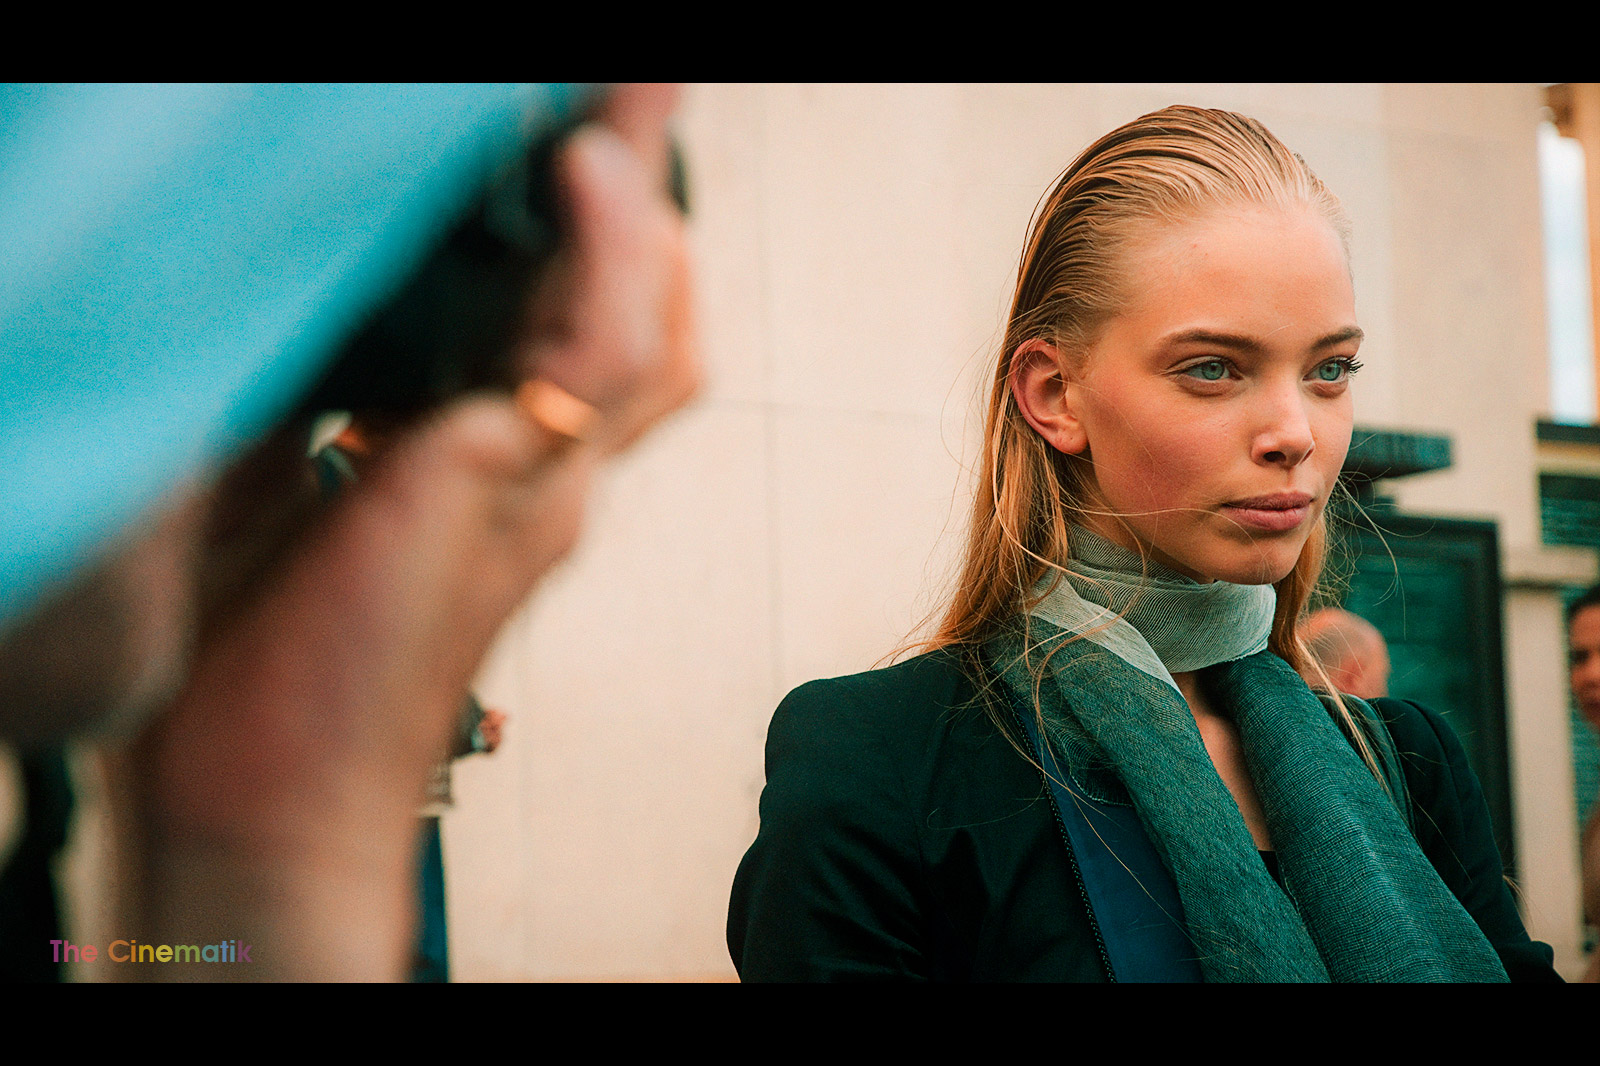 Gorgeous Russian Model Tanya cinematic photograph at New York Fashion Week by Kamal Lahmadi